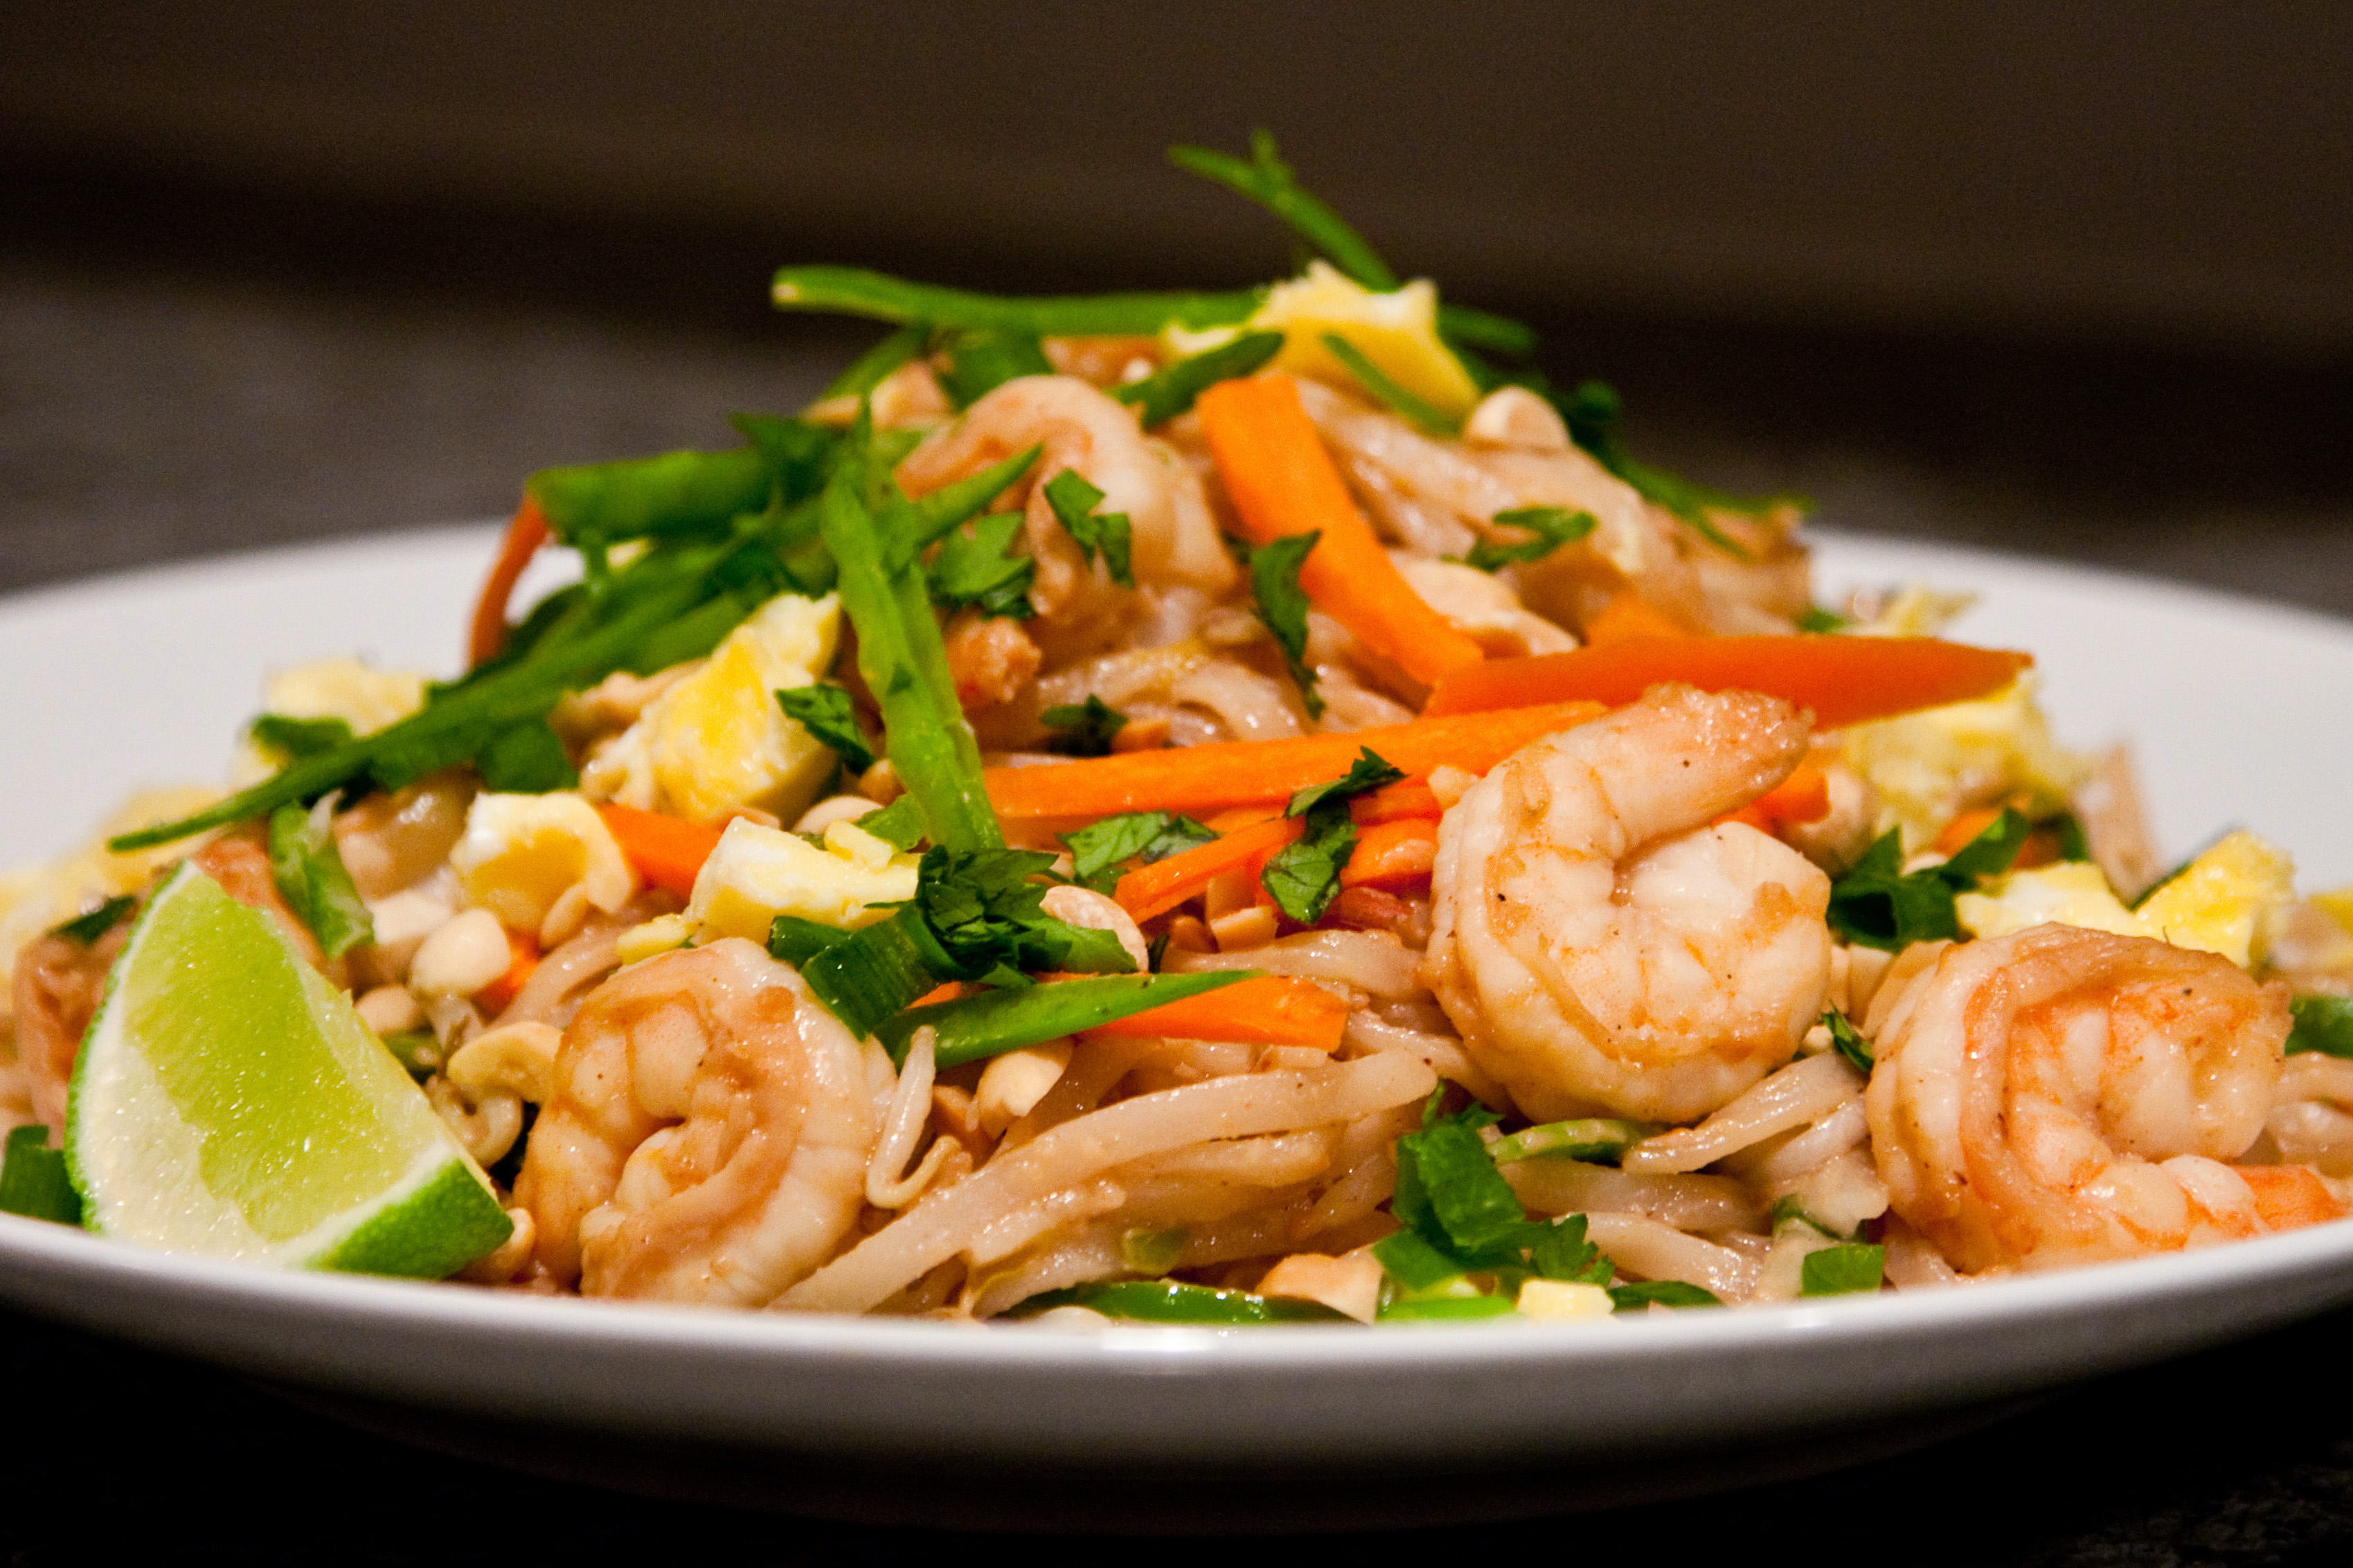 Pad thai cucina di carrie for Italian meals